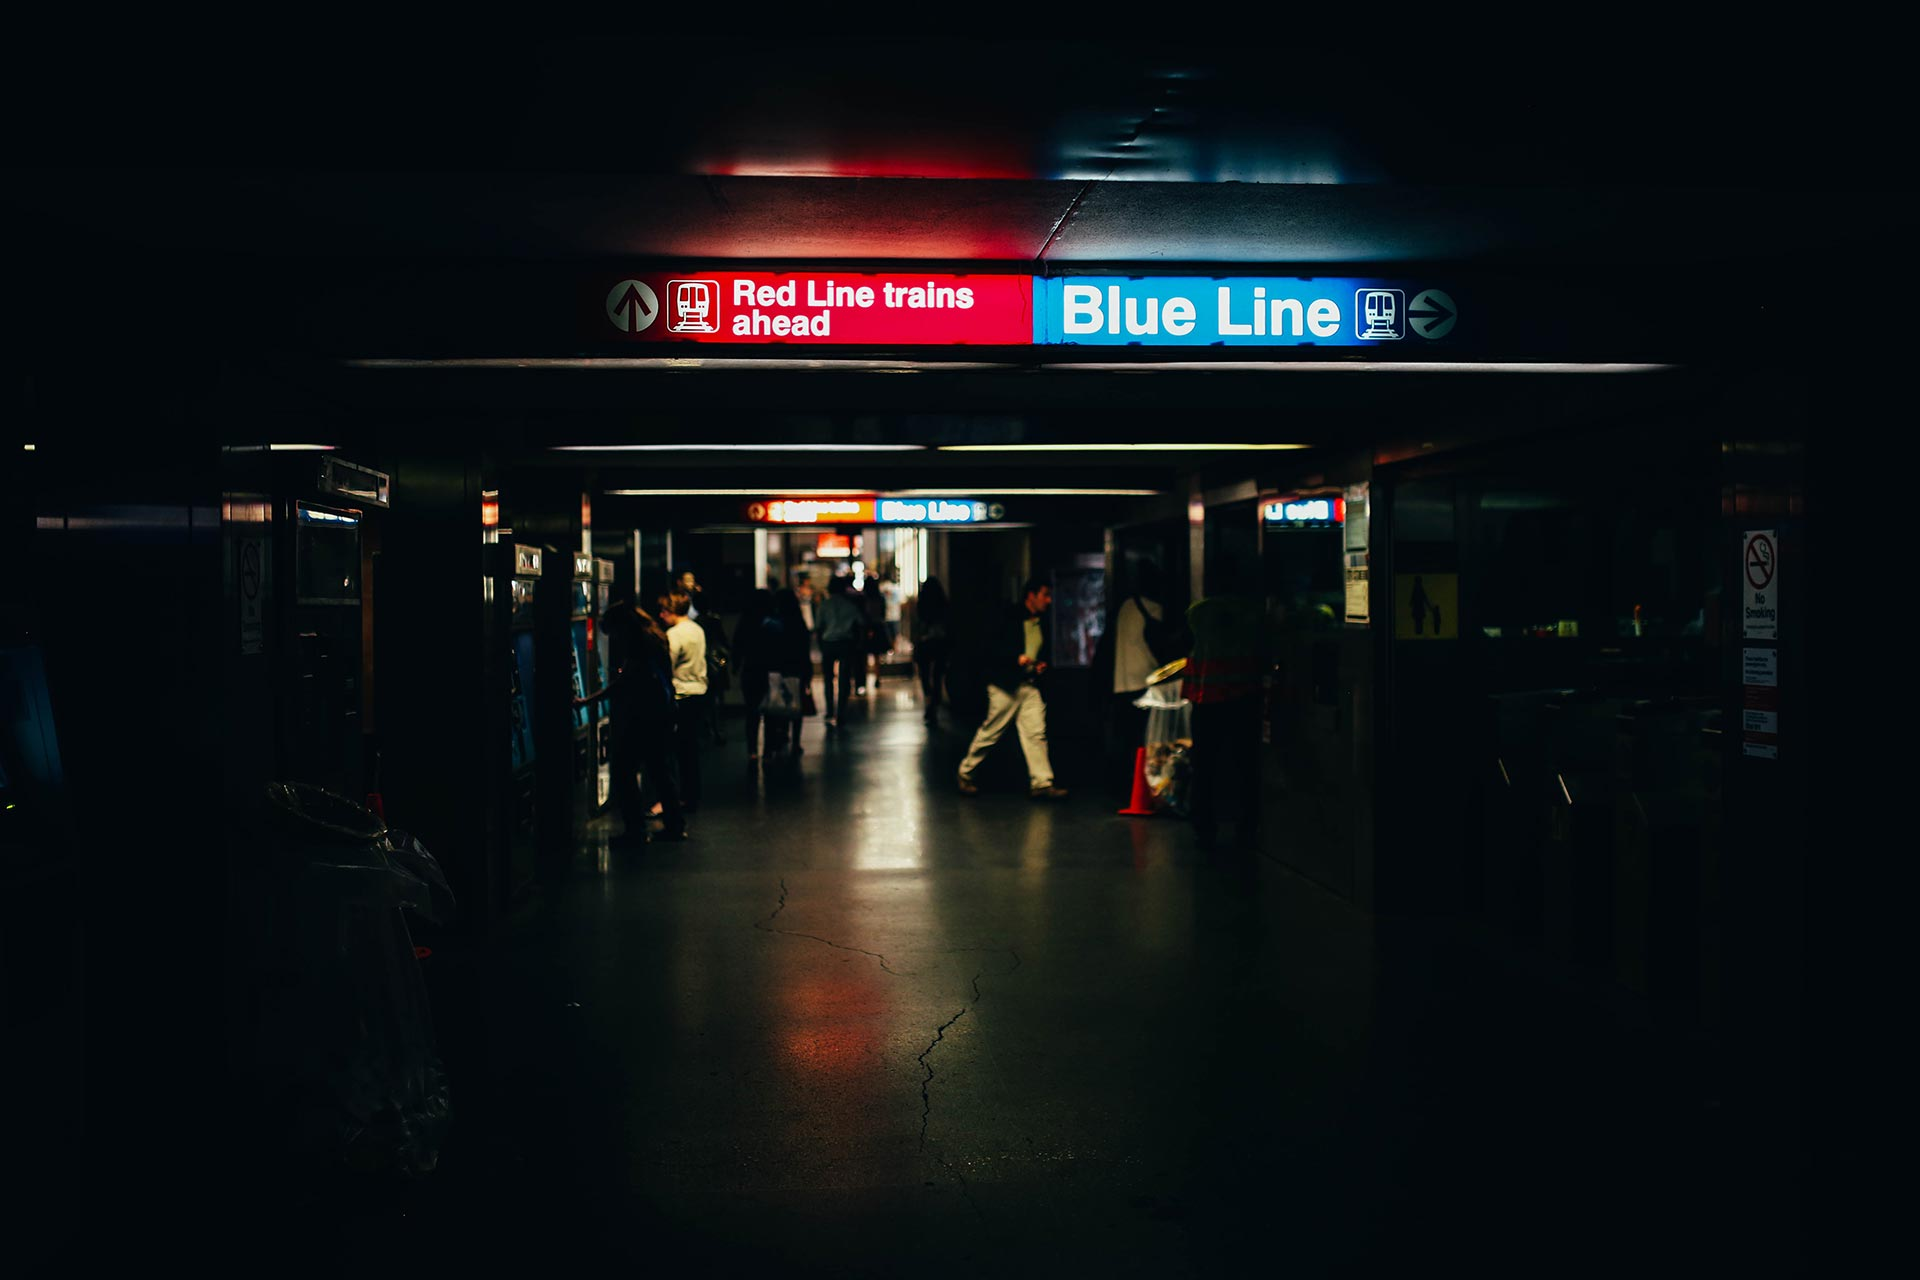 Red Line Trains